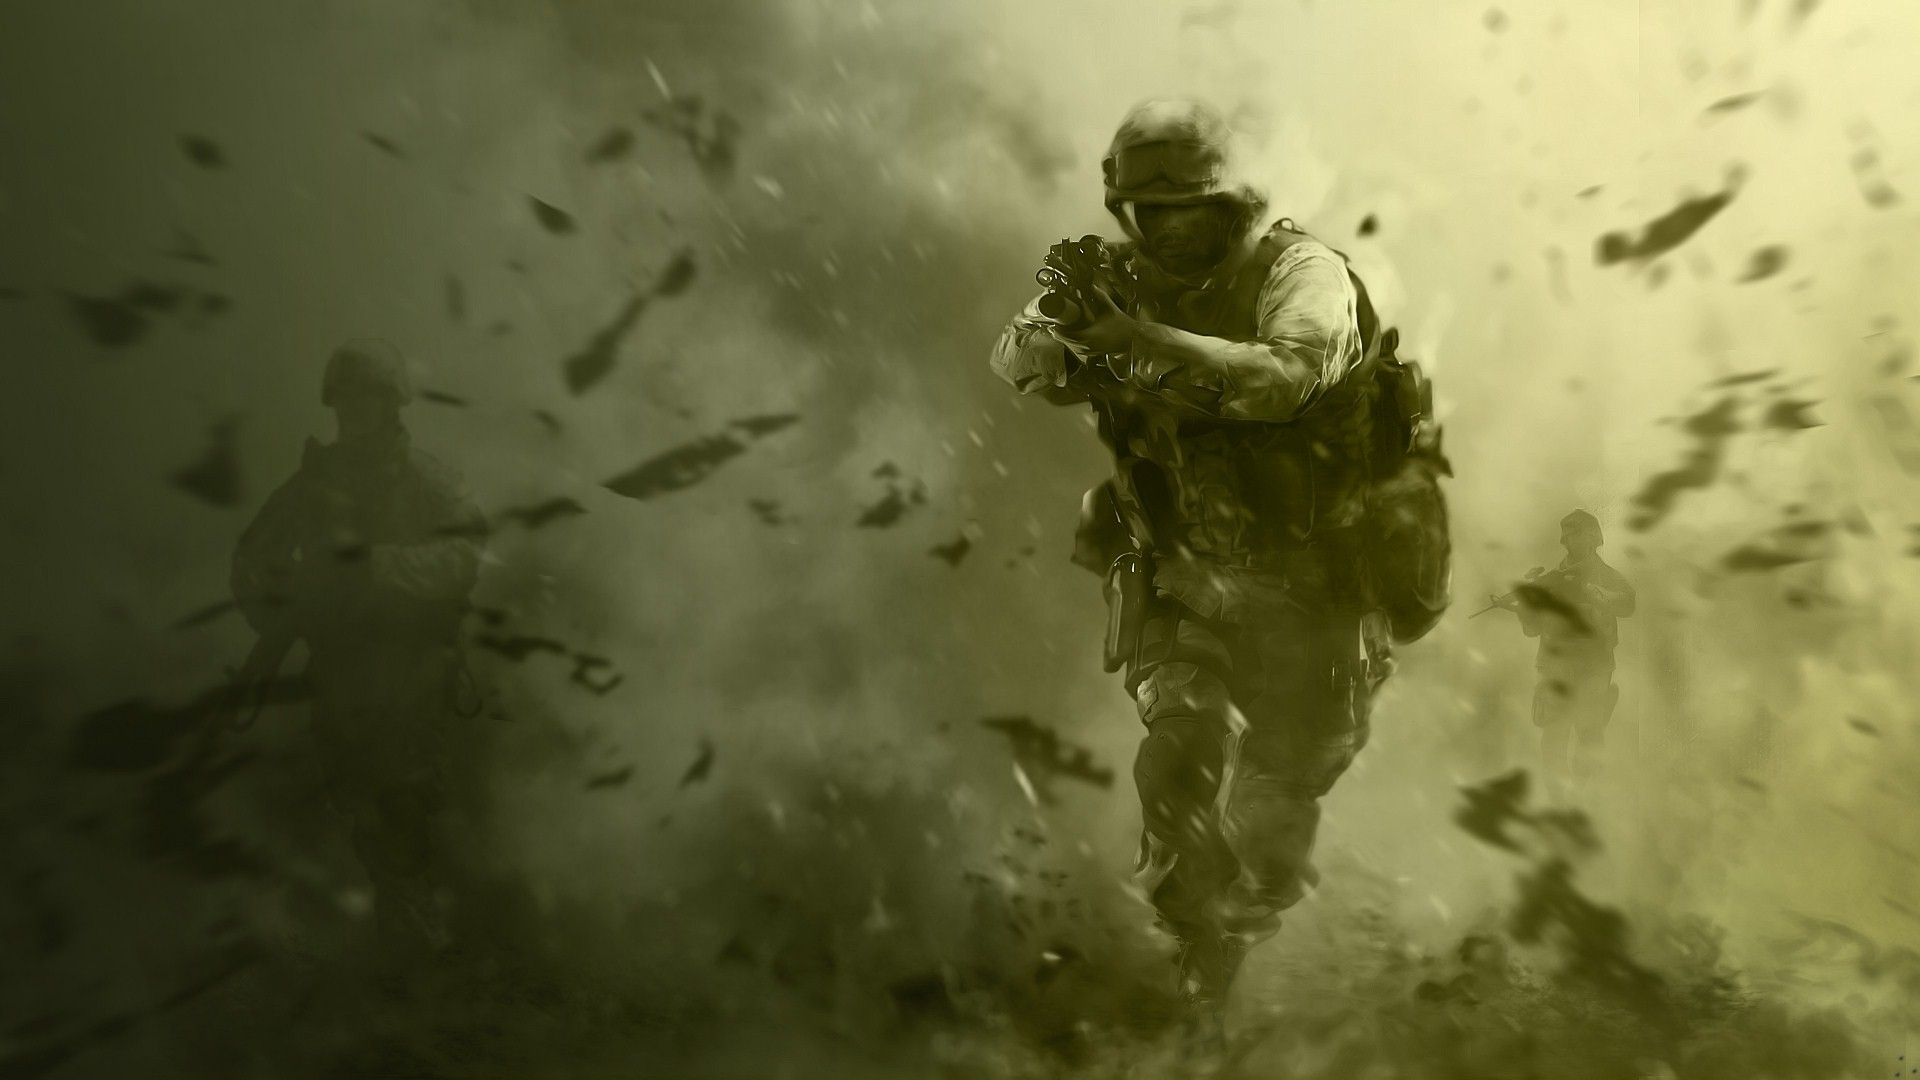 Res: 1920x1080, Army Wallpaper